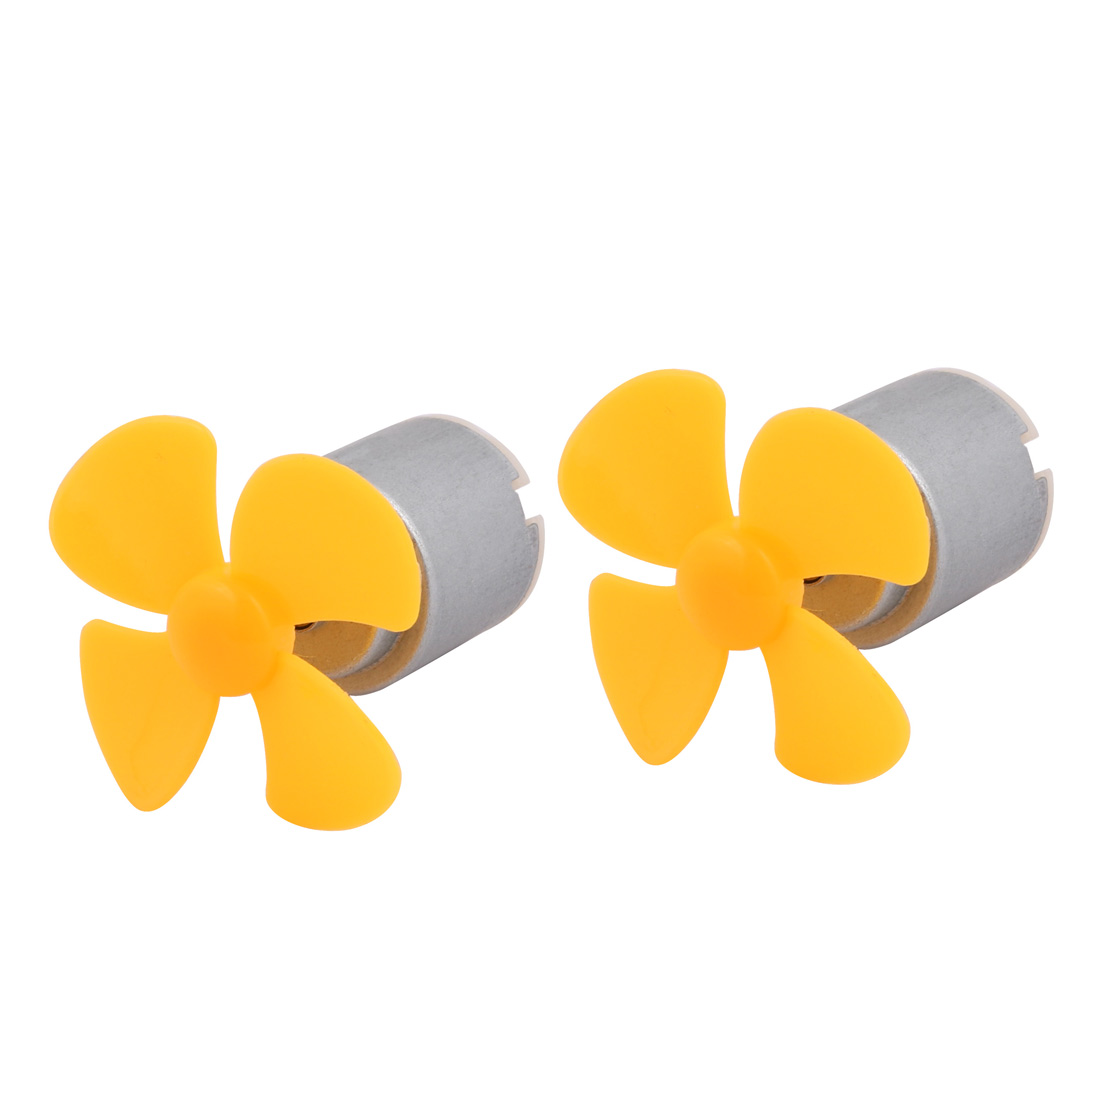 2Pcs DC1.5V 2000RPM High Torque Motor 4 Vanes 40mm Dia Aircraft Propeller Yellow